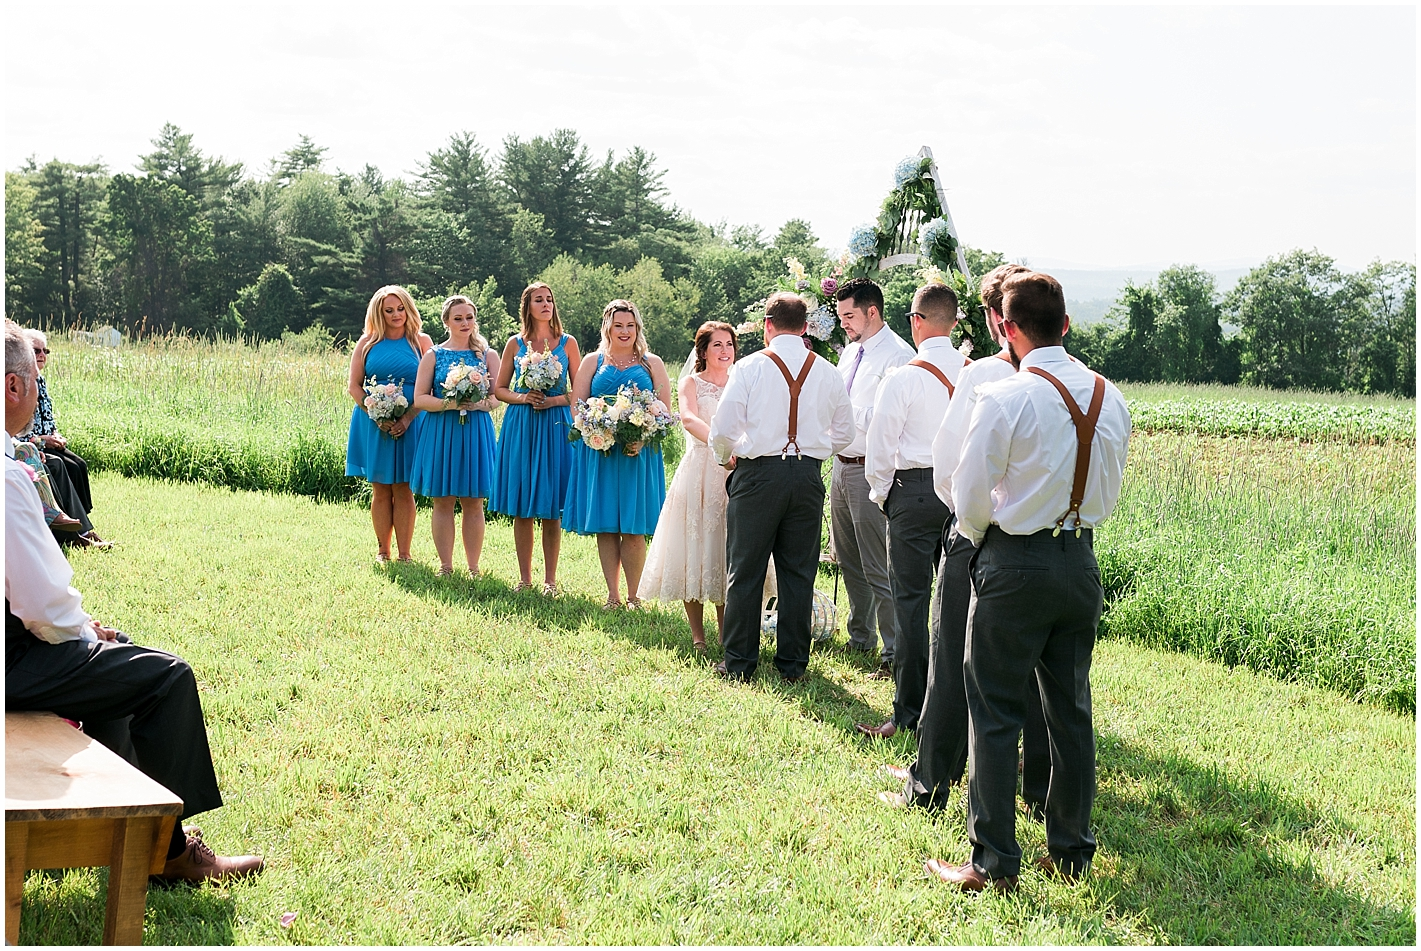 Alice and Wonderland Themed Wedding Ceremony Photos by Alyssa Parker Photography